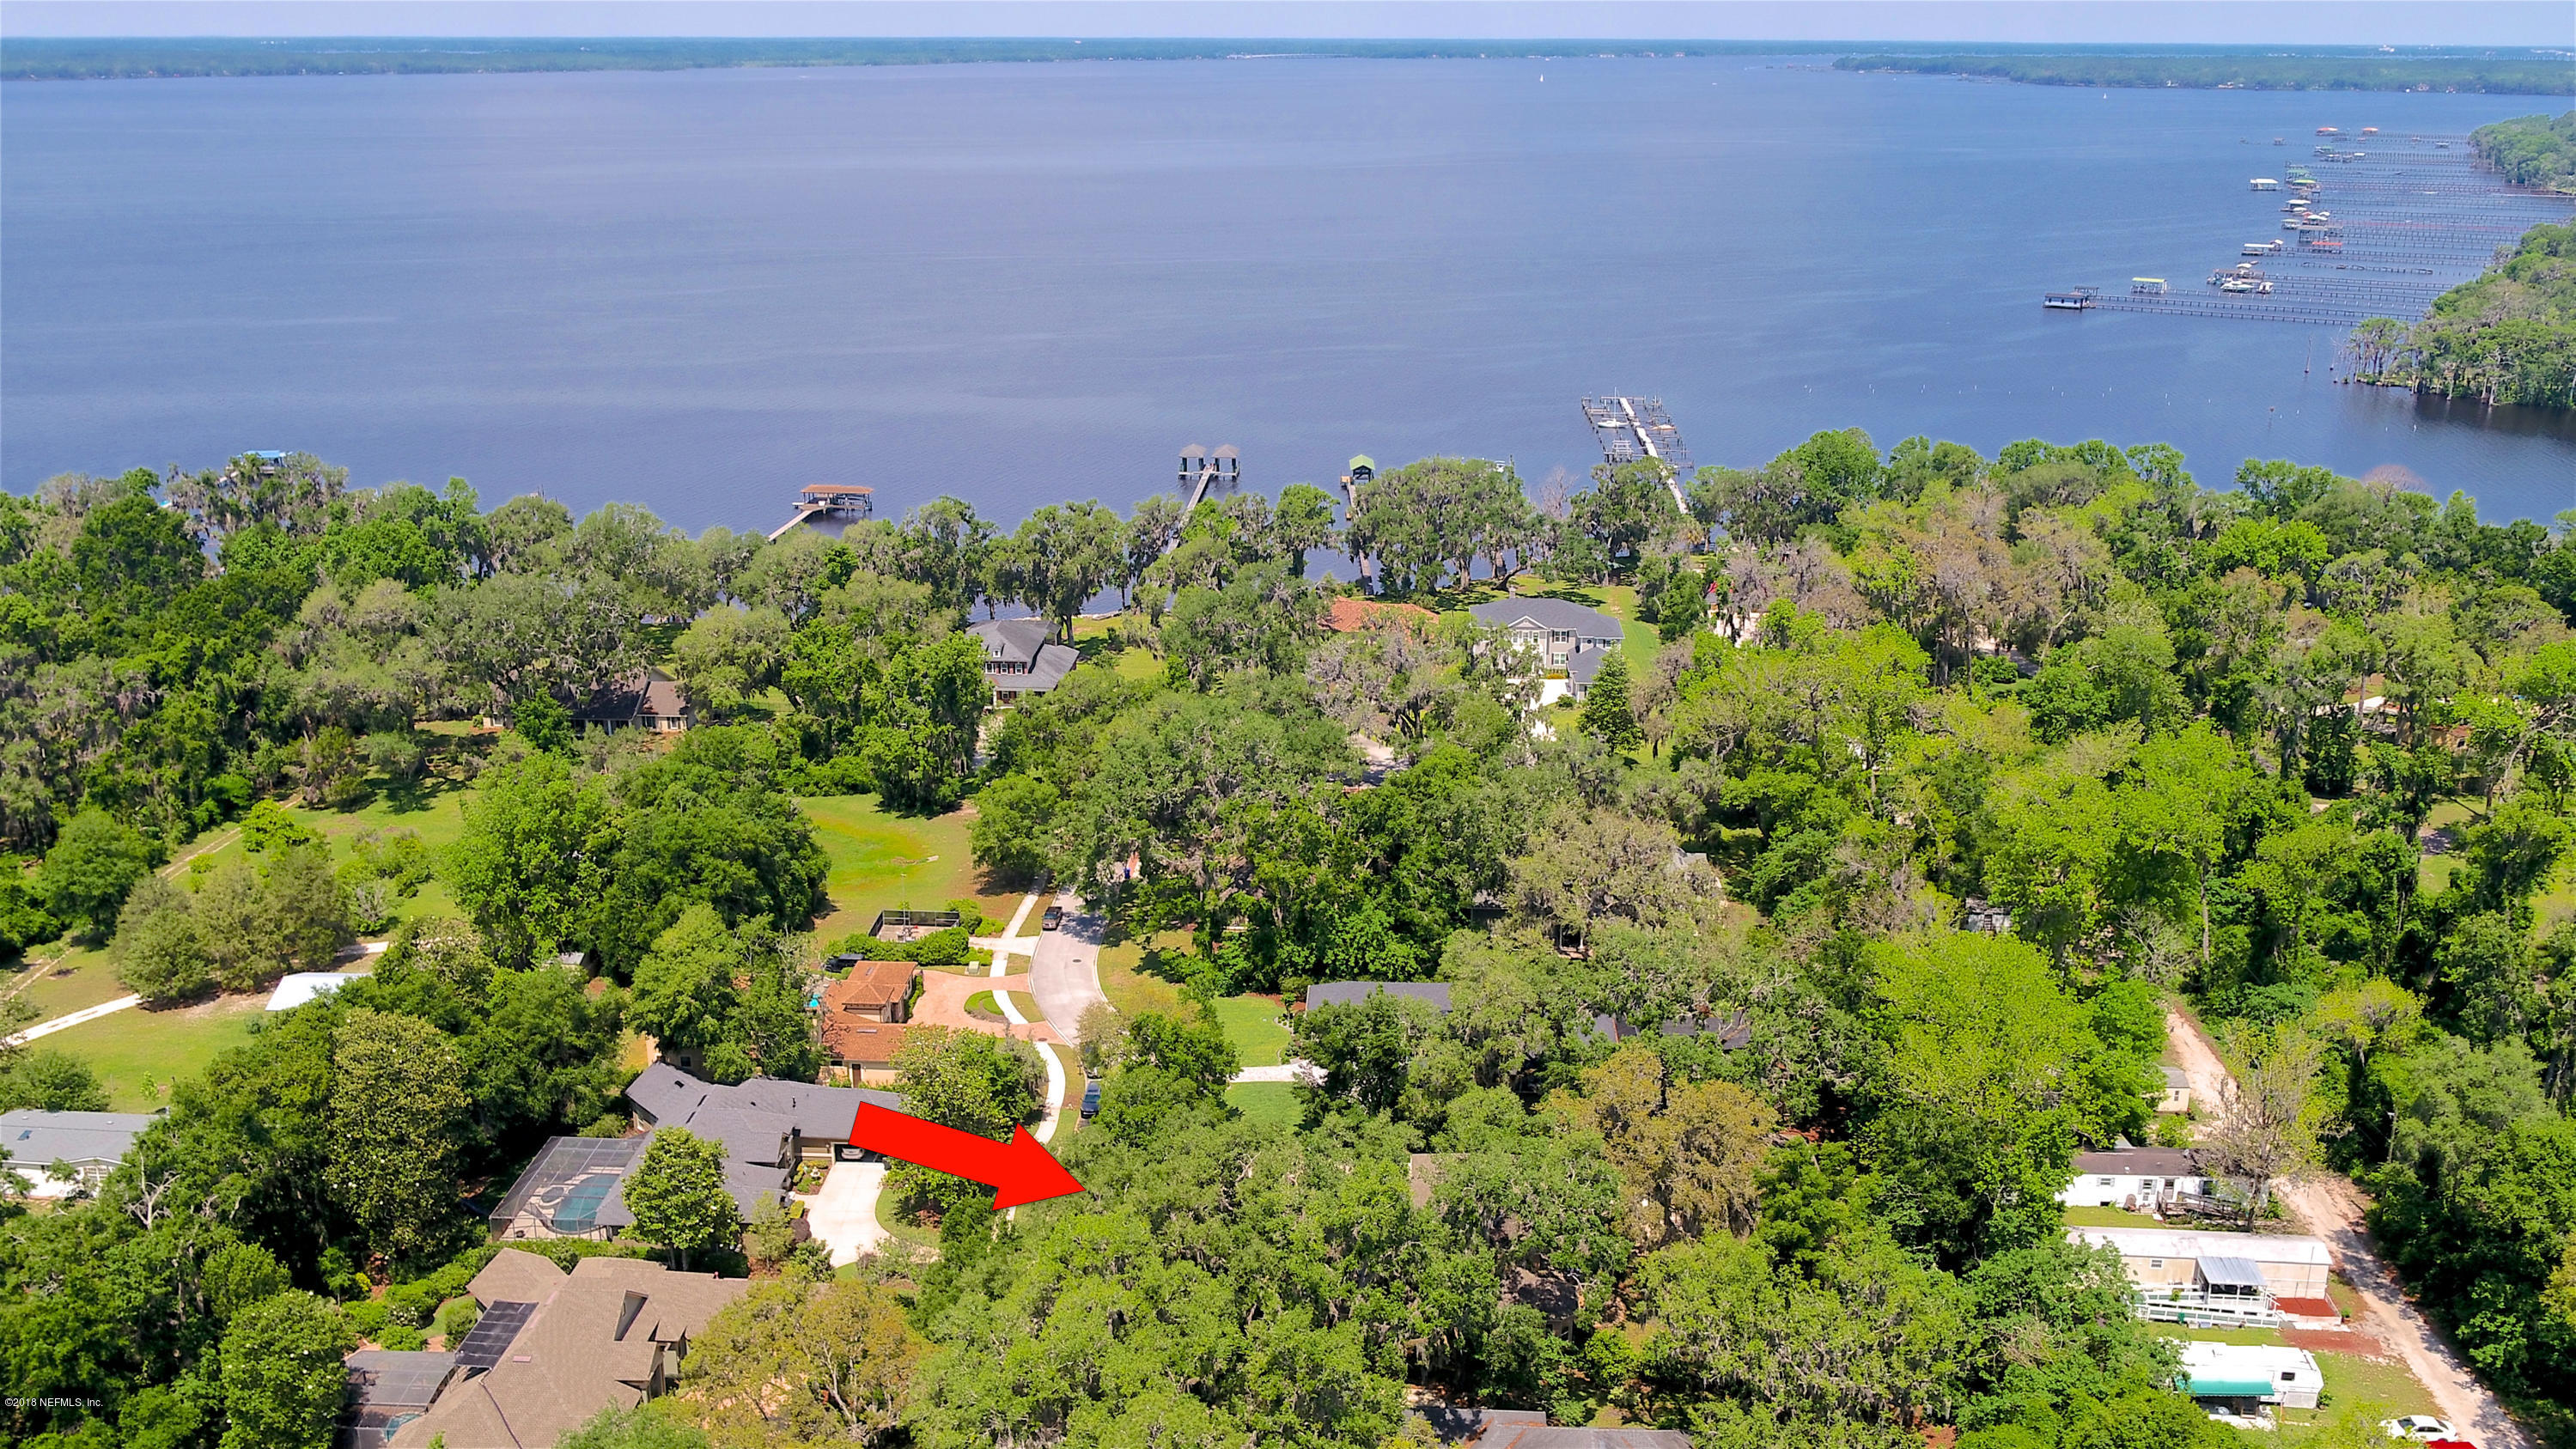 140 HOLLY BERRY, ST JOHNS, FLORIDA 32259, 4 Bedrooms Bedrooms, ,4 BathroomsBathrooms,Residential - single family,For sale,HOLLY BERRY,933505